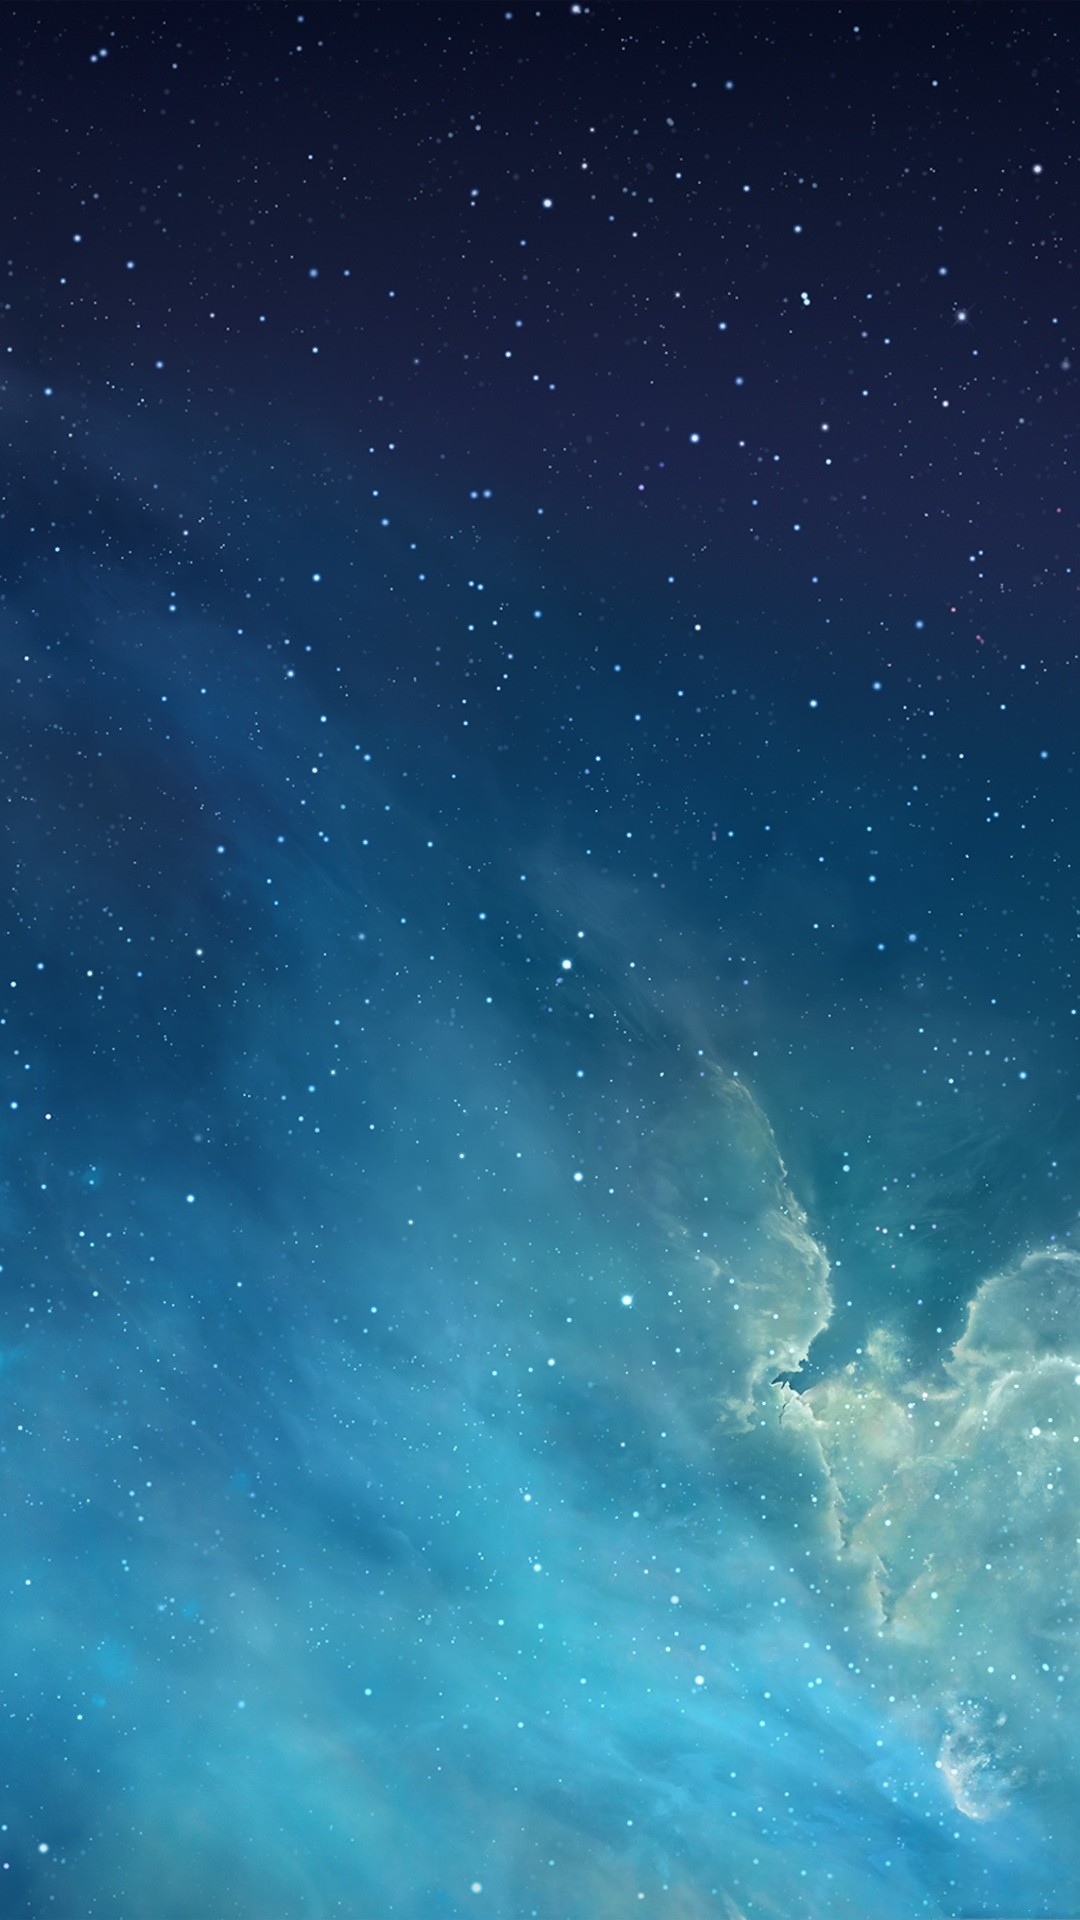 Iphone Ios 8 Wallpaper Hd 79 Images